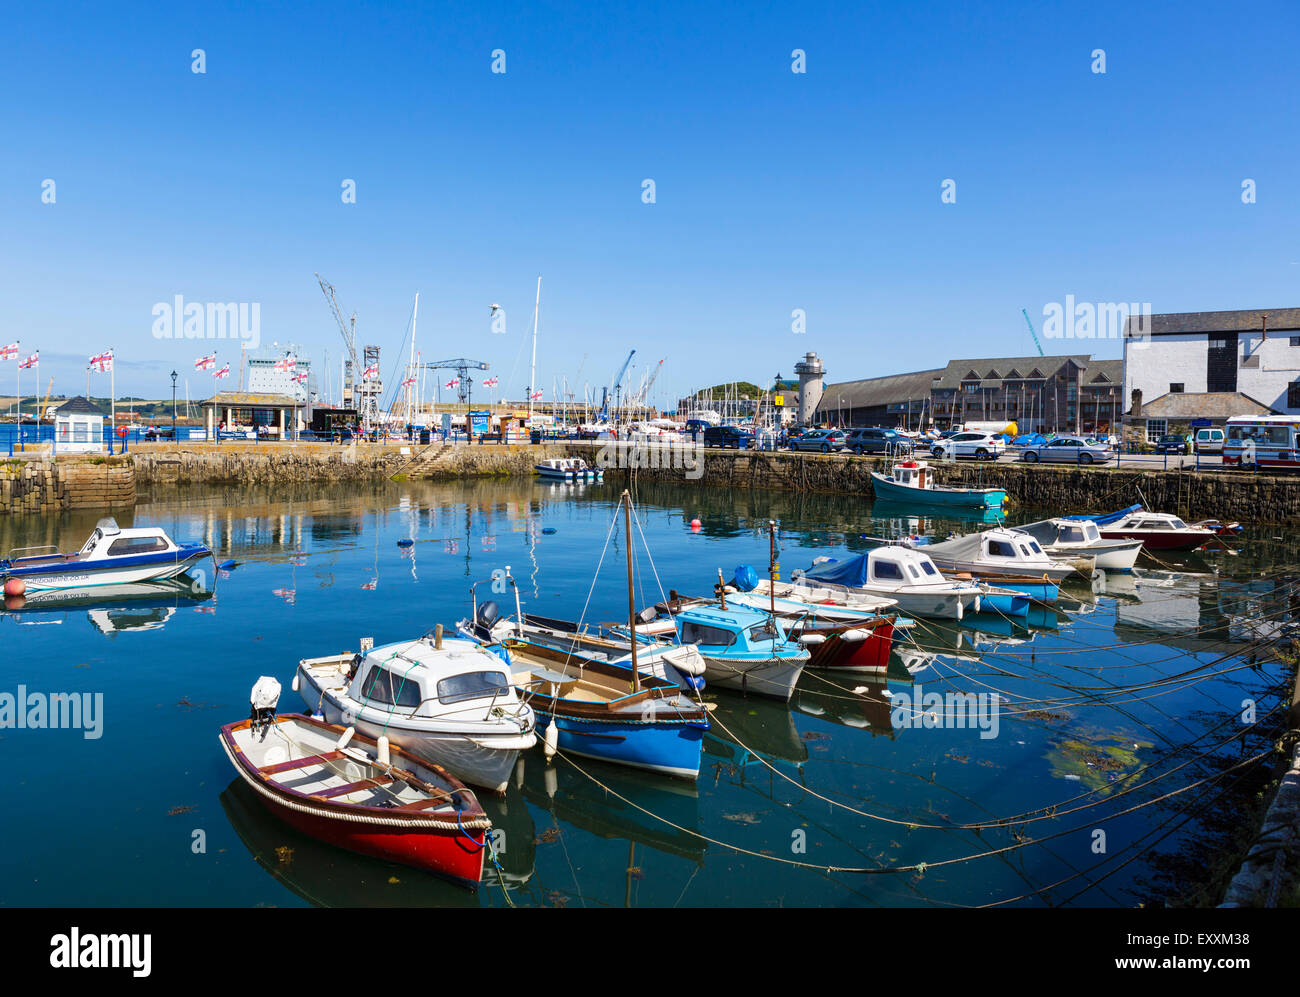 Boats in the harbour at Custom House Quay, Falmouth, Cornwall, England, UK - Stock Image